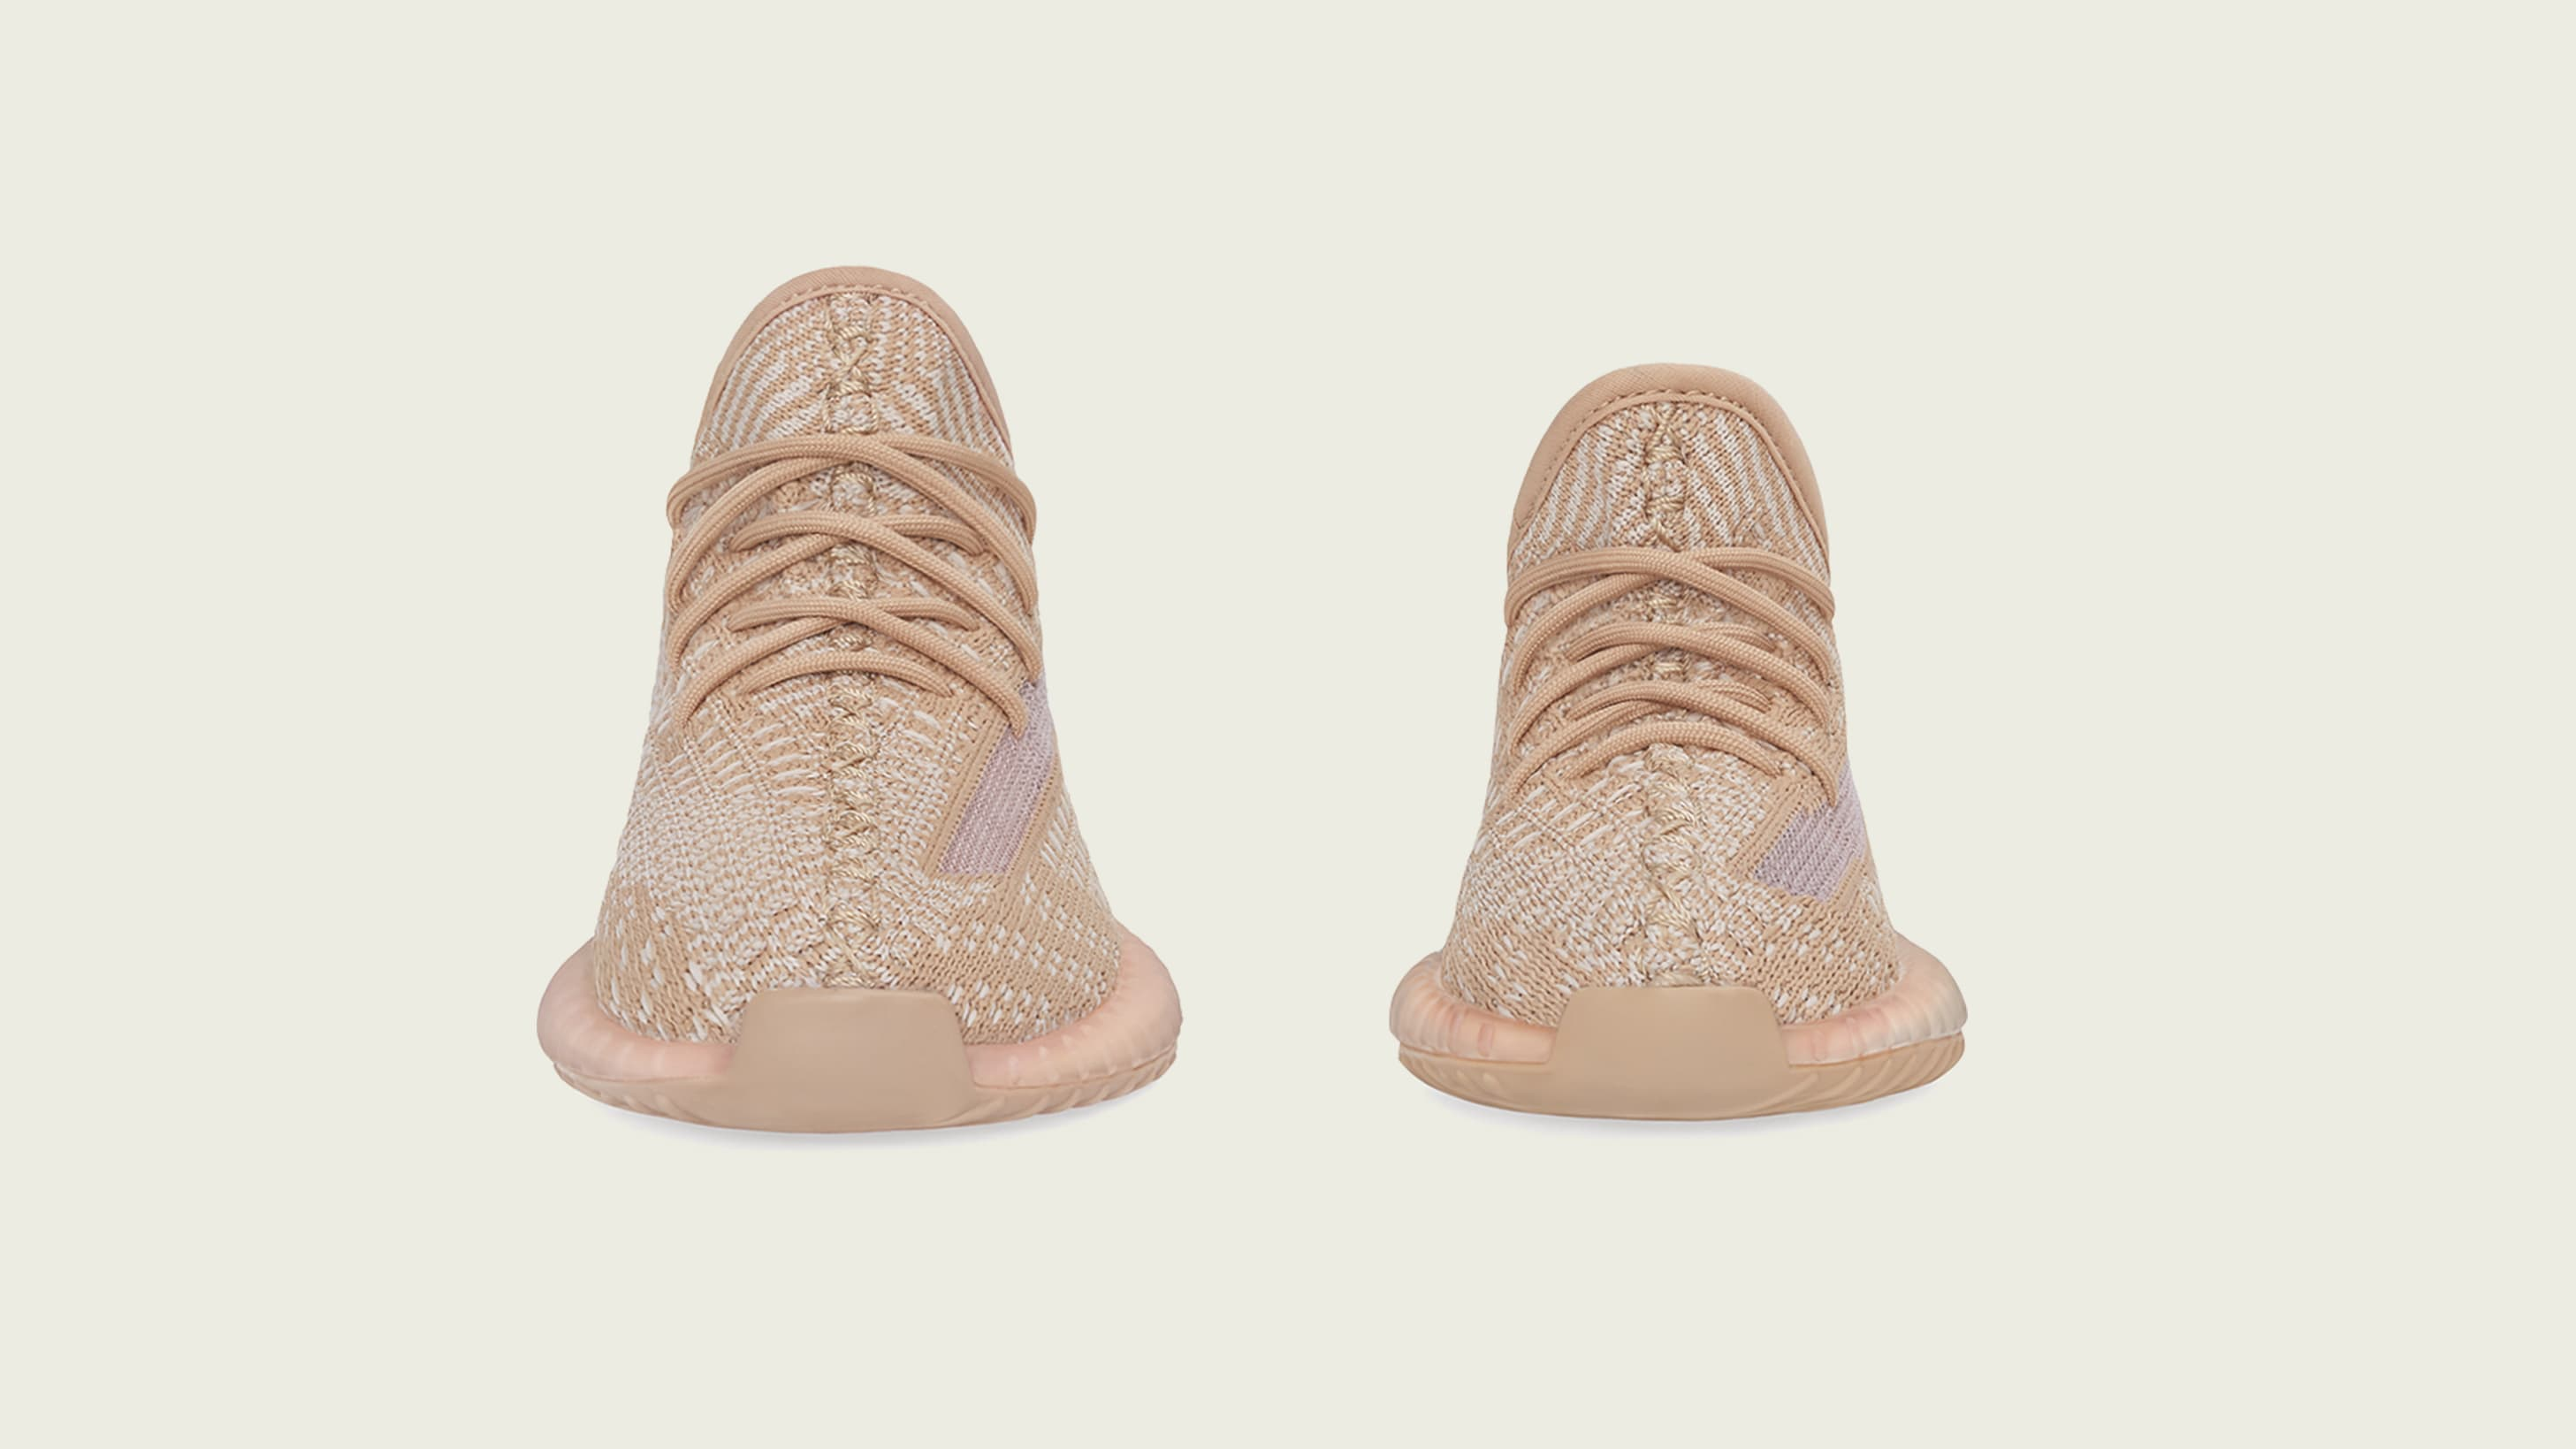 Adidas Yeezy Boost 350 V2 'Clay' Kids (Front)